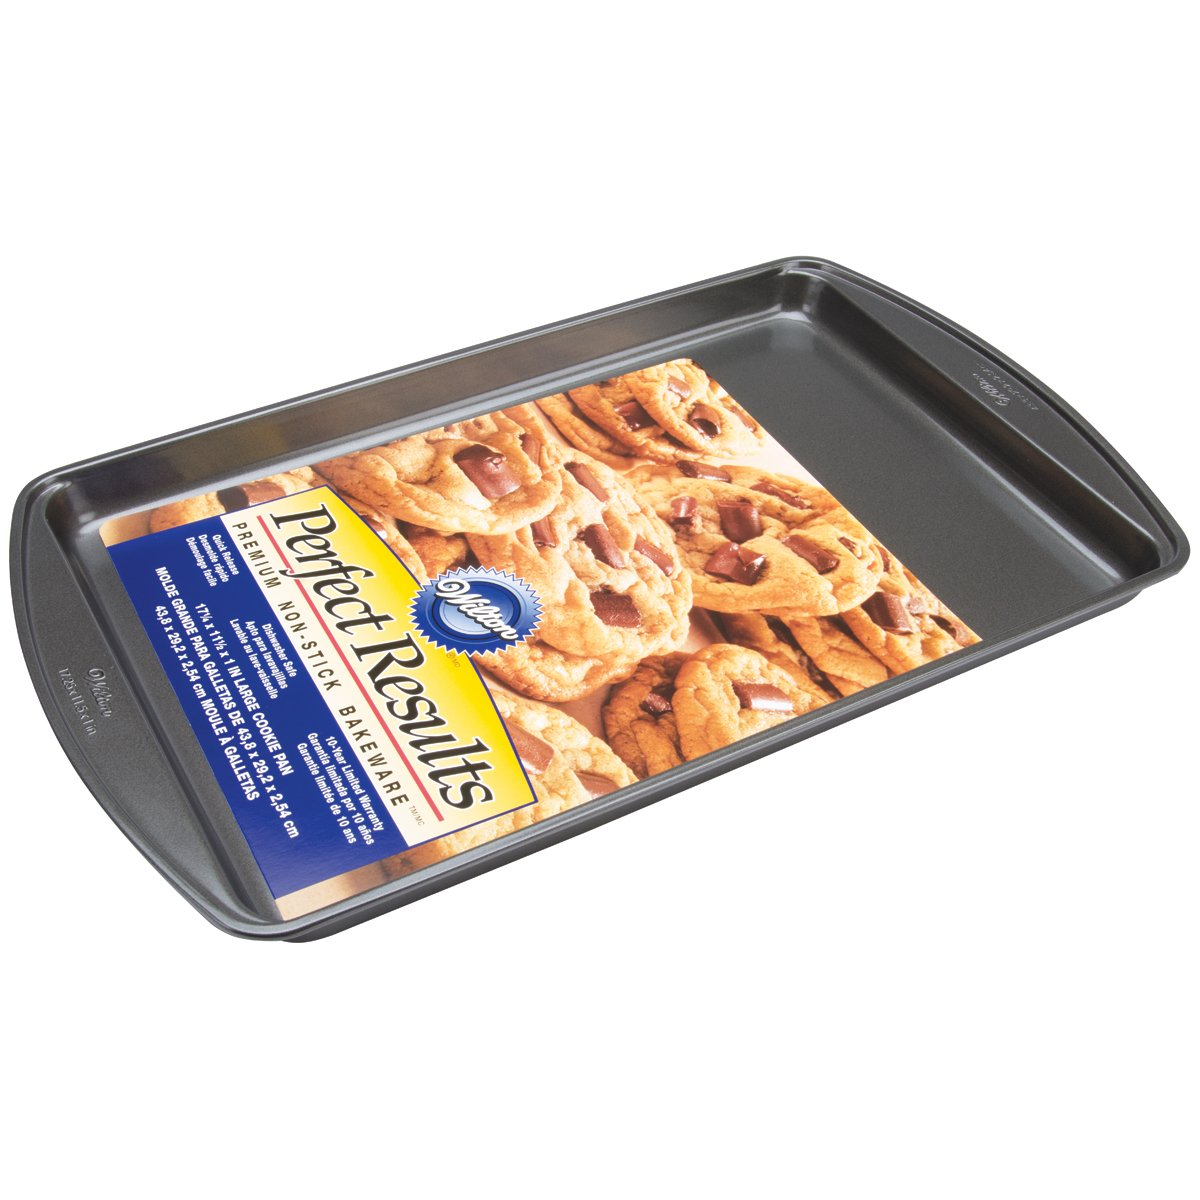 Wilton Perfect Results Premium Non-Stick Bakeware Large Cookie Sheet, 17.25 x 11.5-Inch